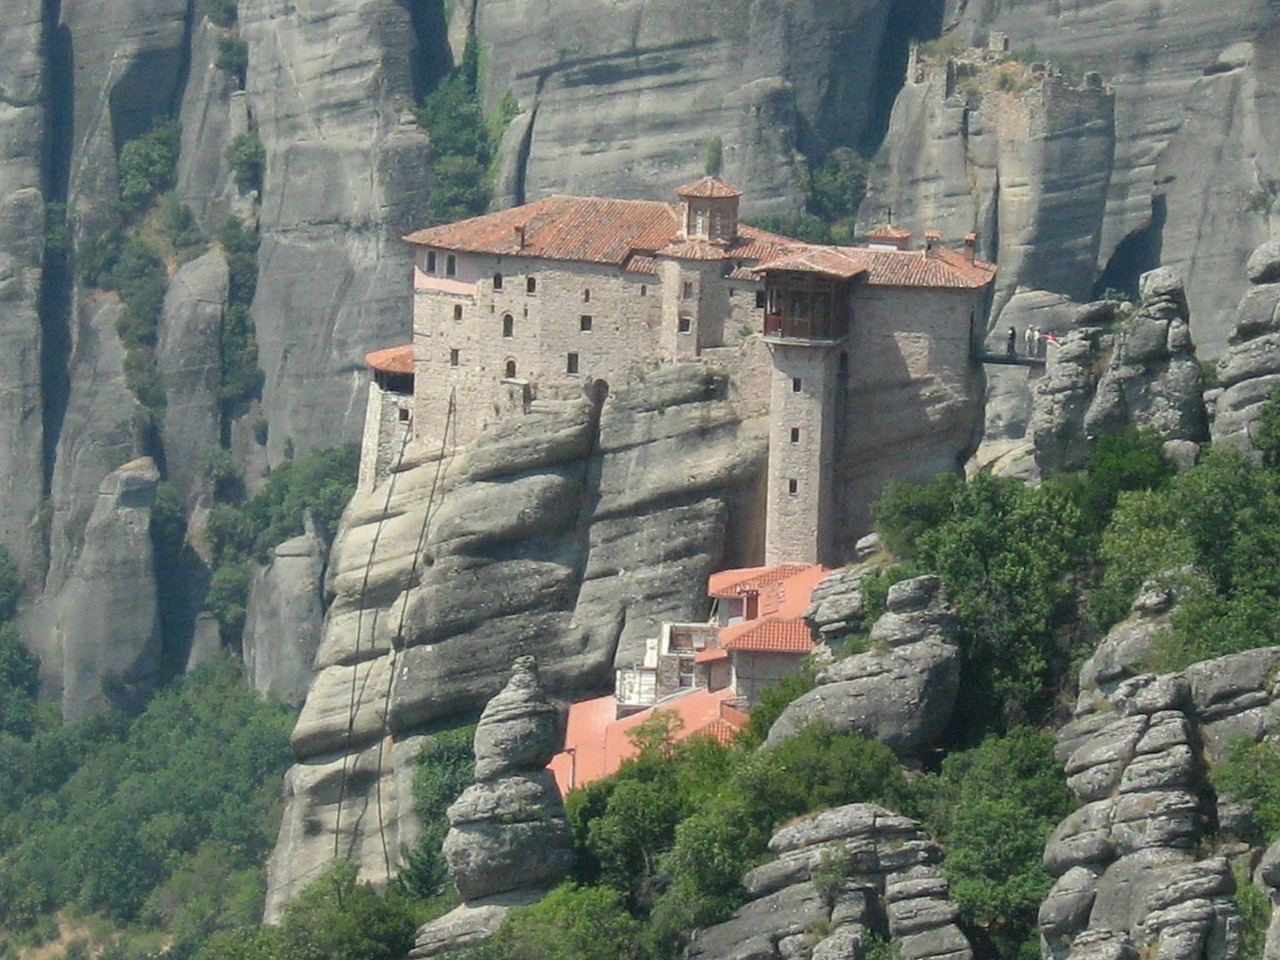 Meteora, one of the most popular tourist attractions in Greece